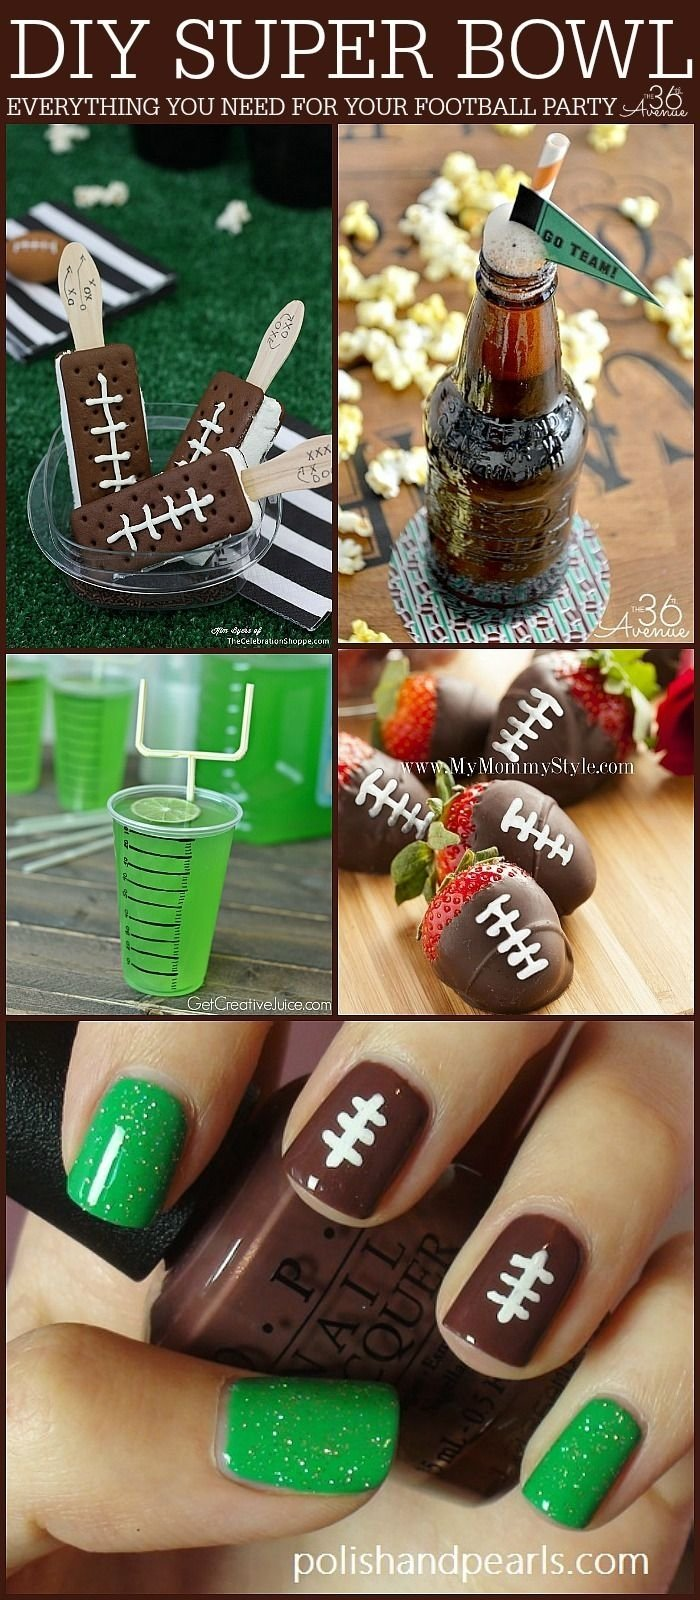 10 Amazing Super Bowl Party Decorating Ideas 186 best football super bowl sunday party ideas images on